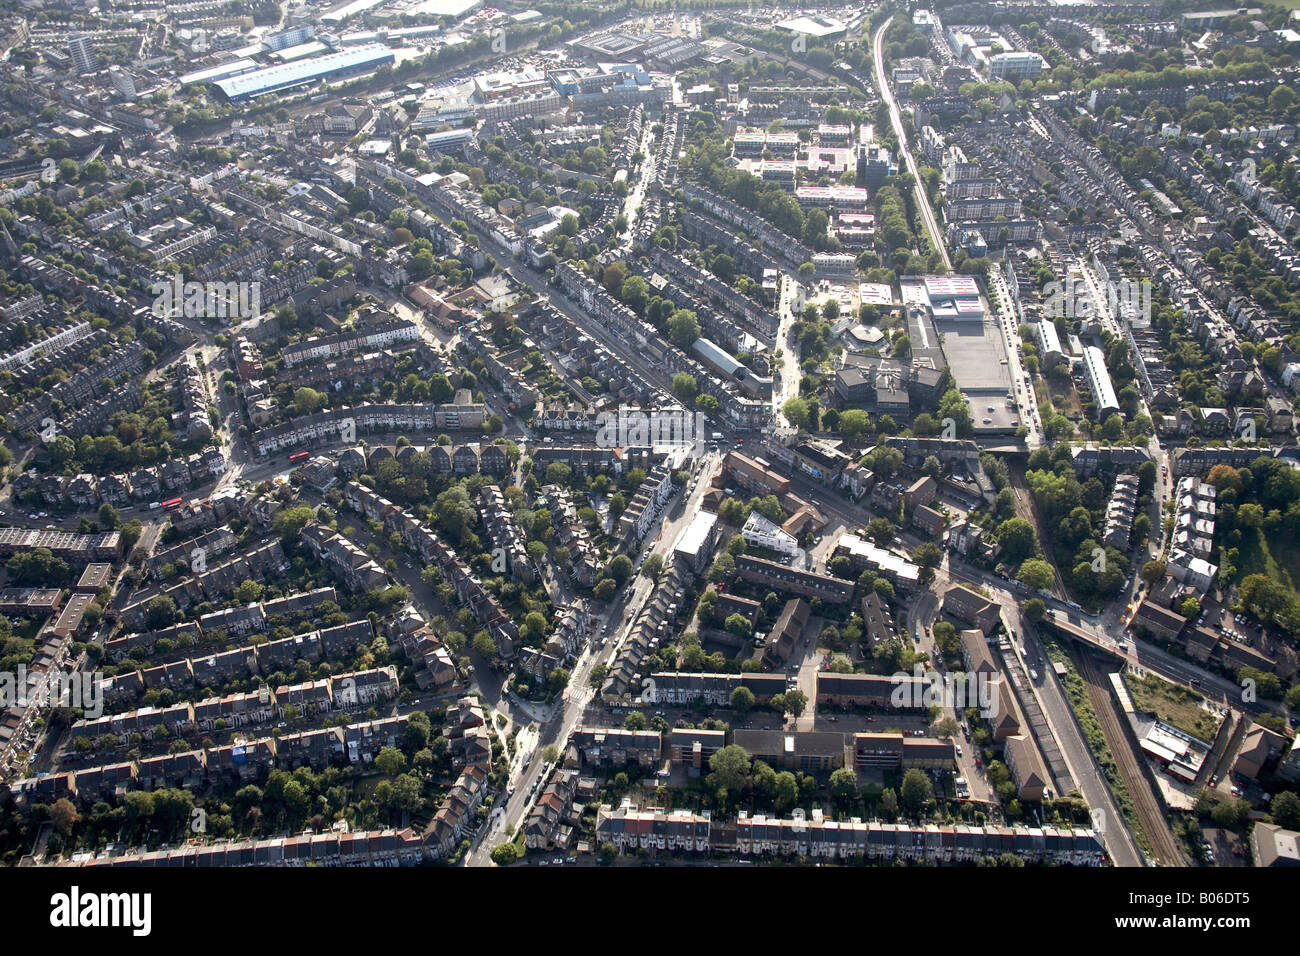 Aerial view south west of Kentish Town Industrial Estate railway lines A400 road and suburban housing London NW5 - Stock Image